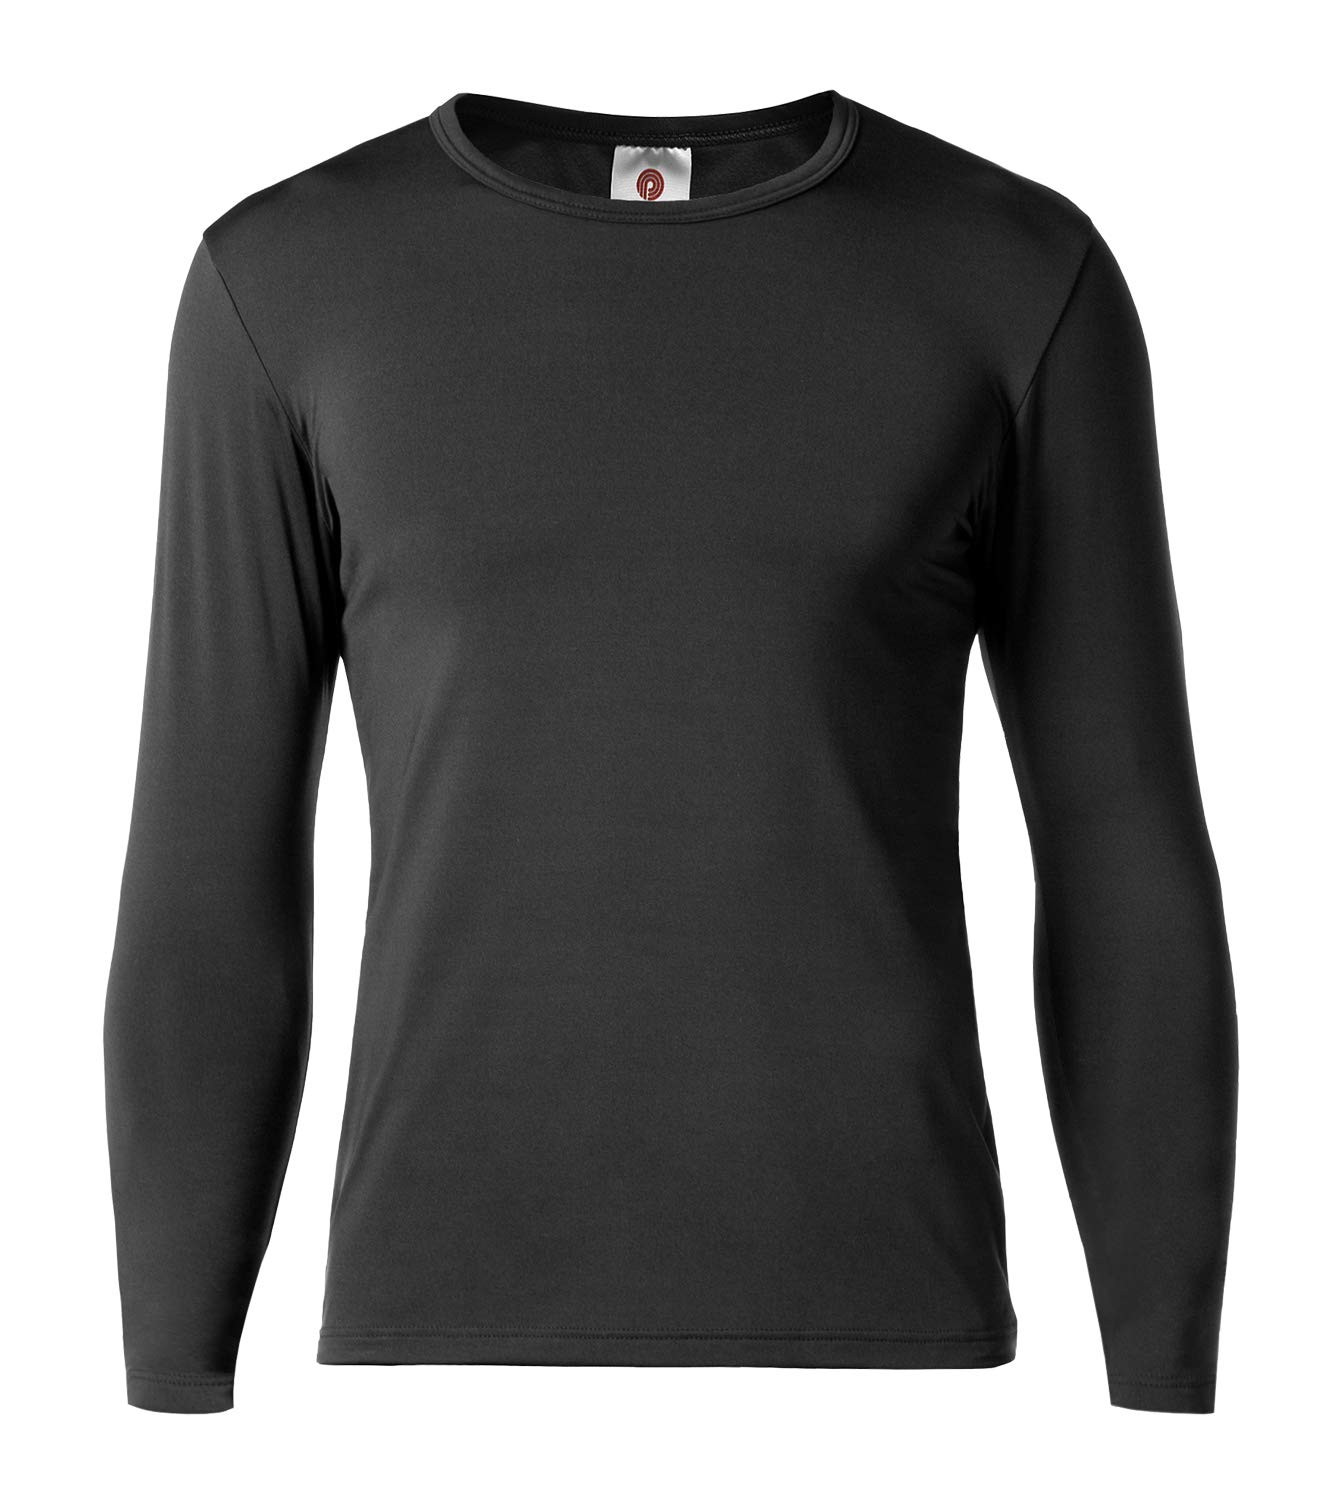 LAPASA Men's Thermal Underwear Tops Fleece Lined Base Layer Long Sleeve Shirts 1 Pack M09 (L Chest 41''-43'' Sleeve 23.6'', Lightweight Black1) by LAPASA